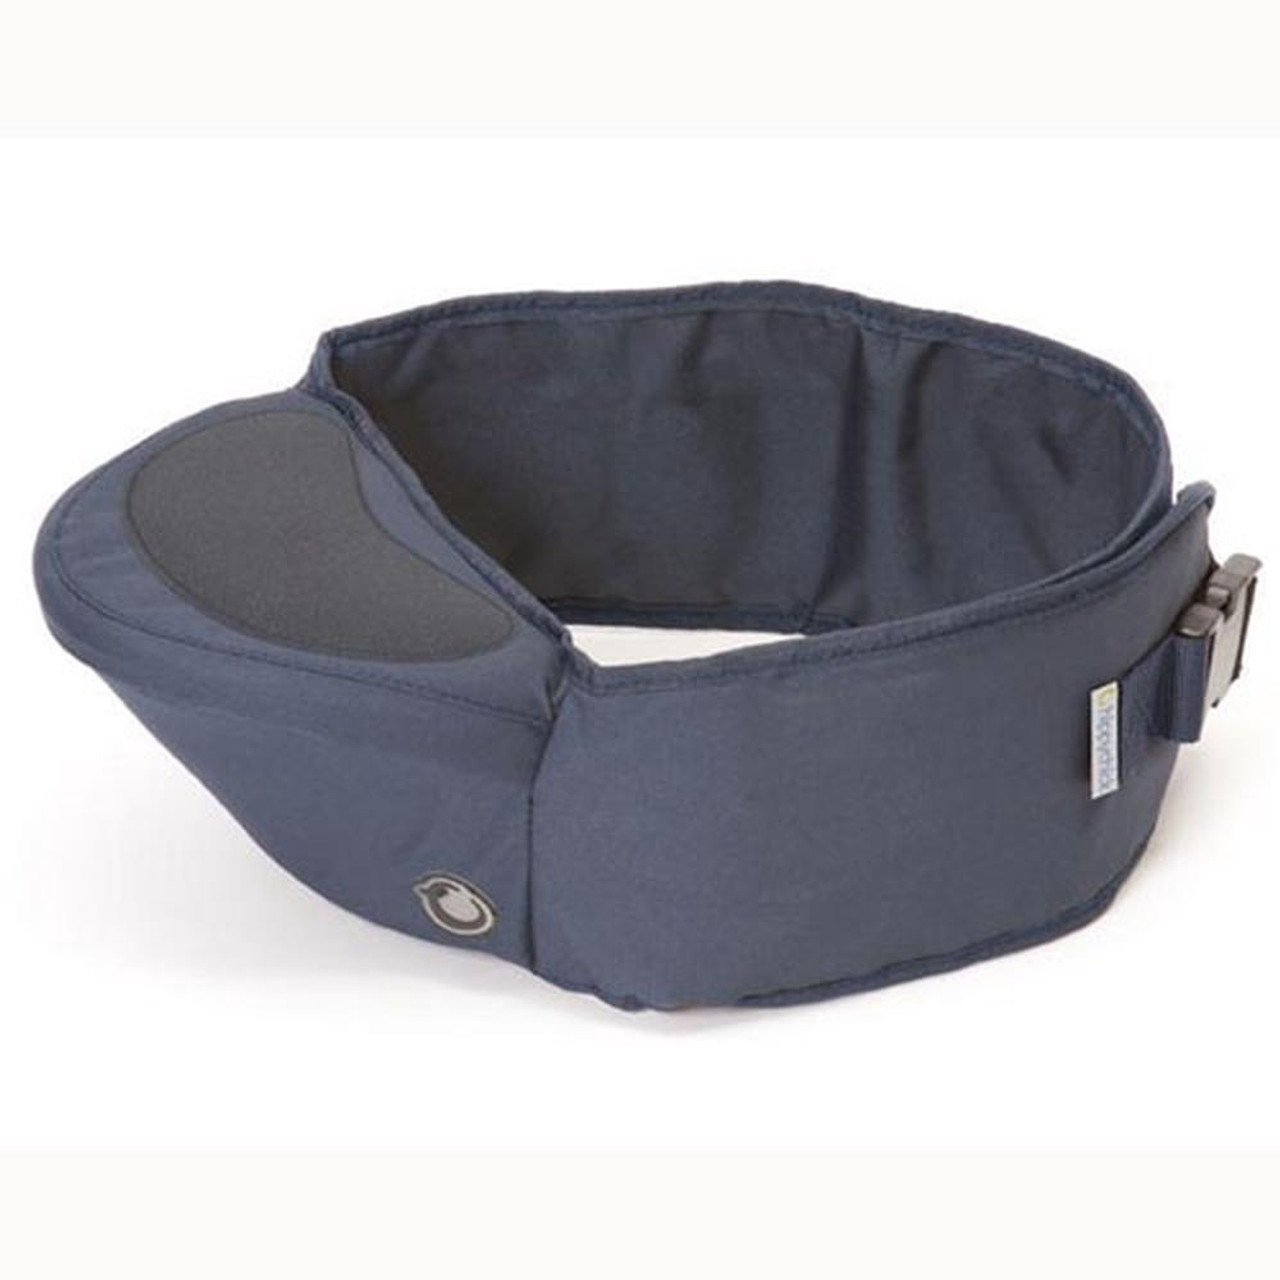 Hippychick Hipseat Denim at Baby Barn Discounts Hippychick Hipseat's back supporting belt design is perfect for carrying children between 6 - 36 months.